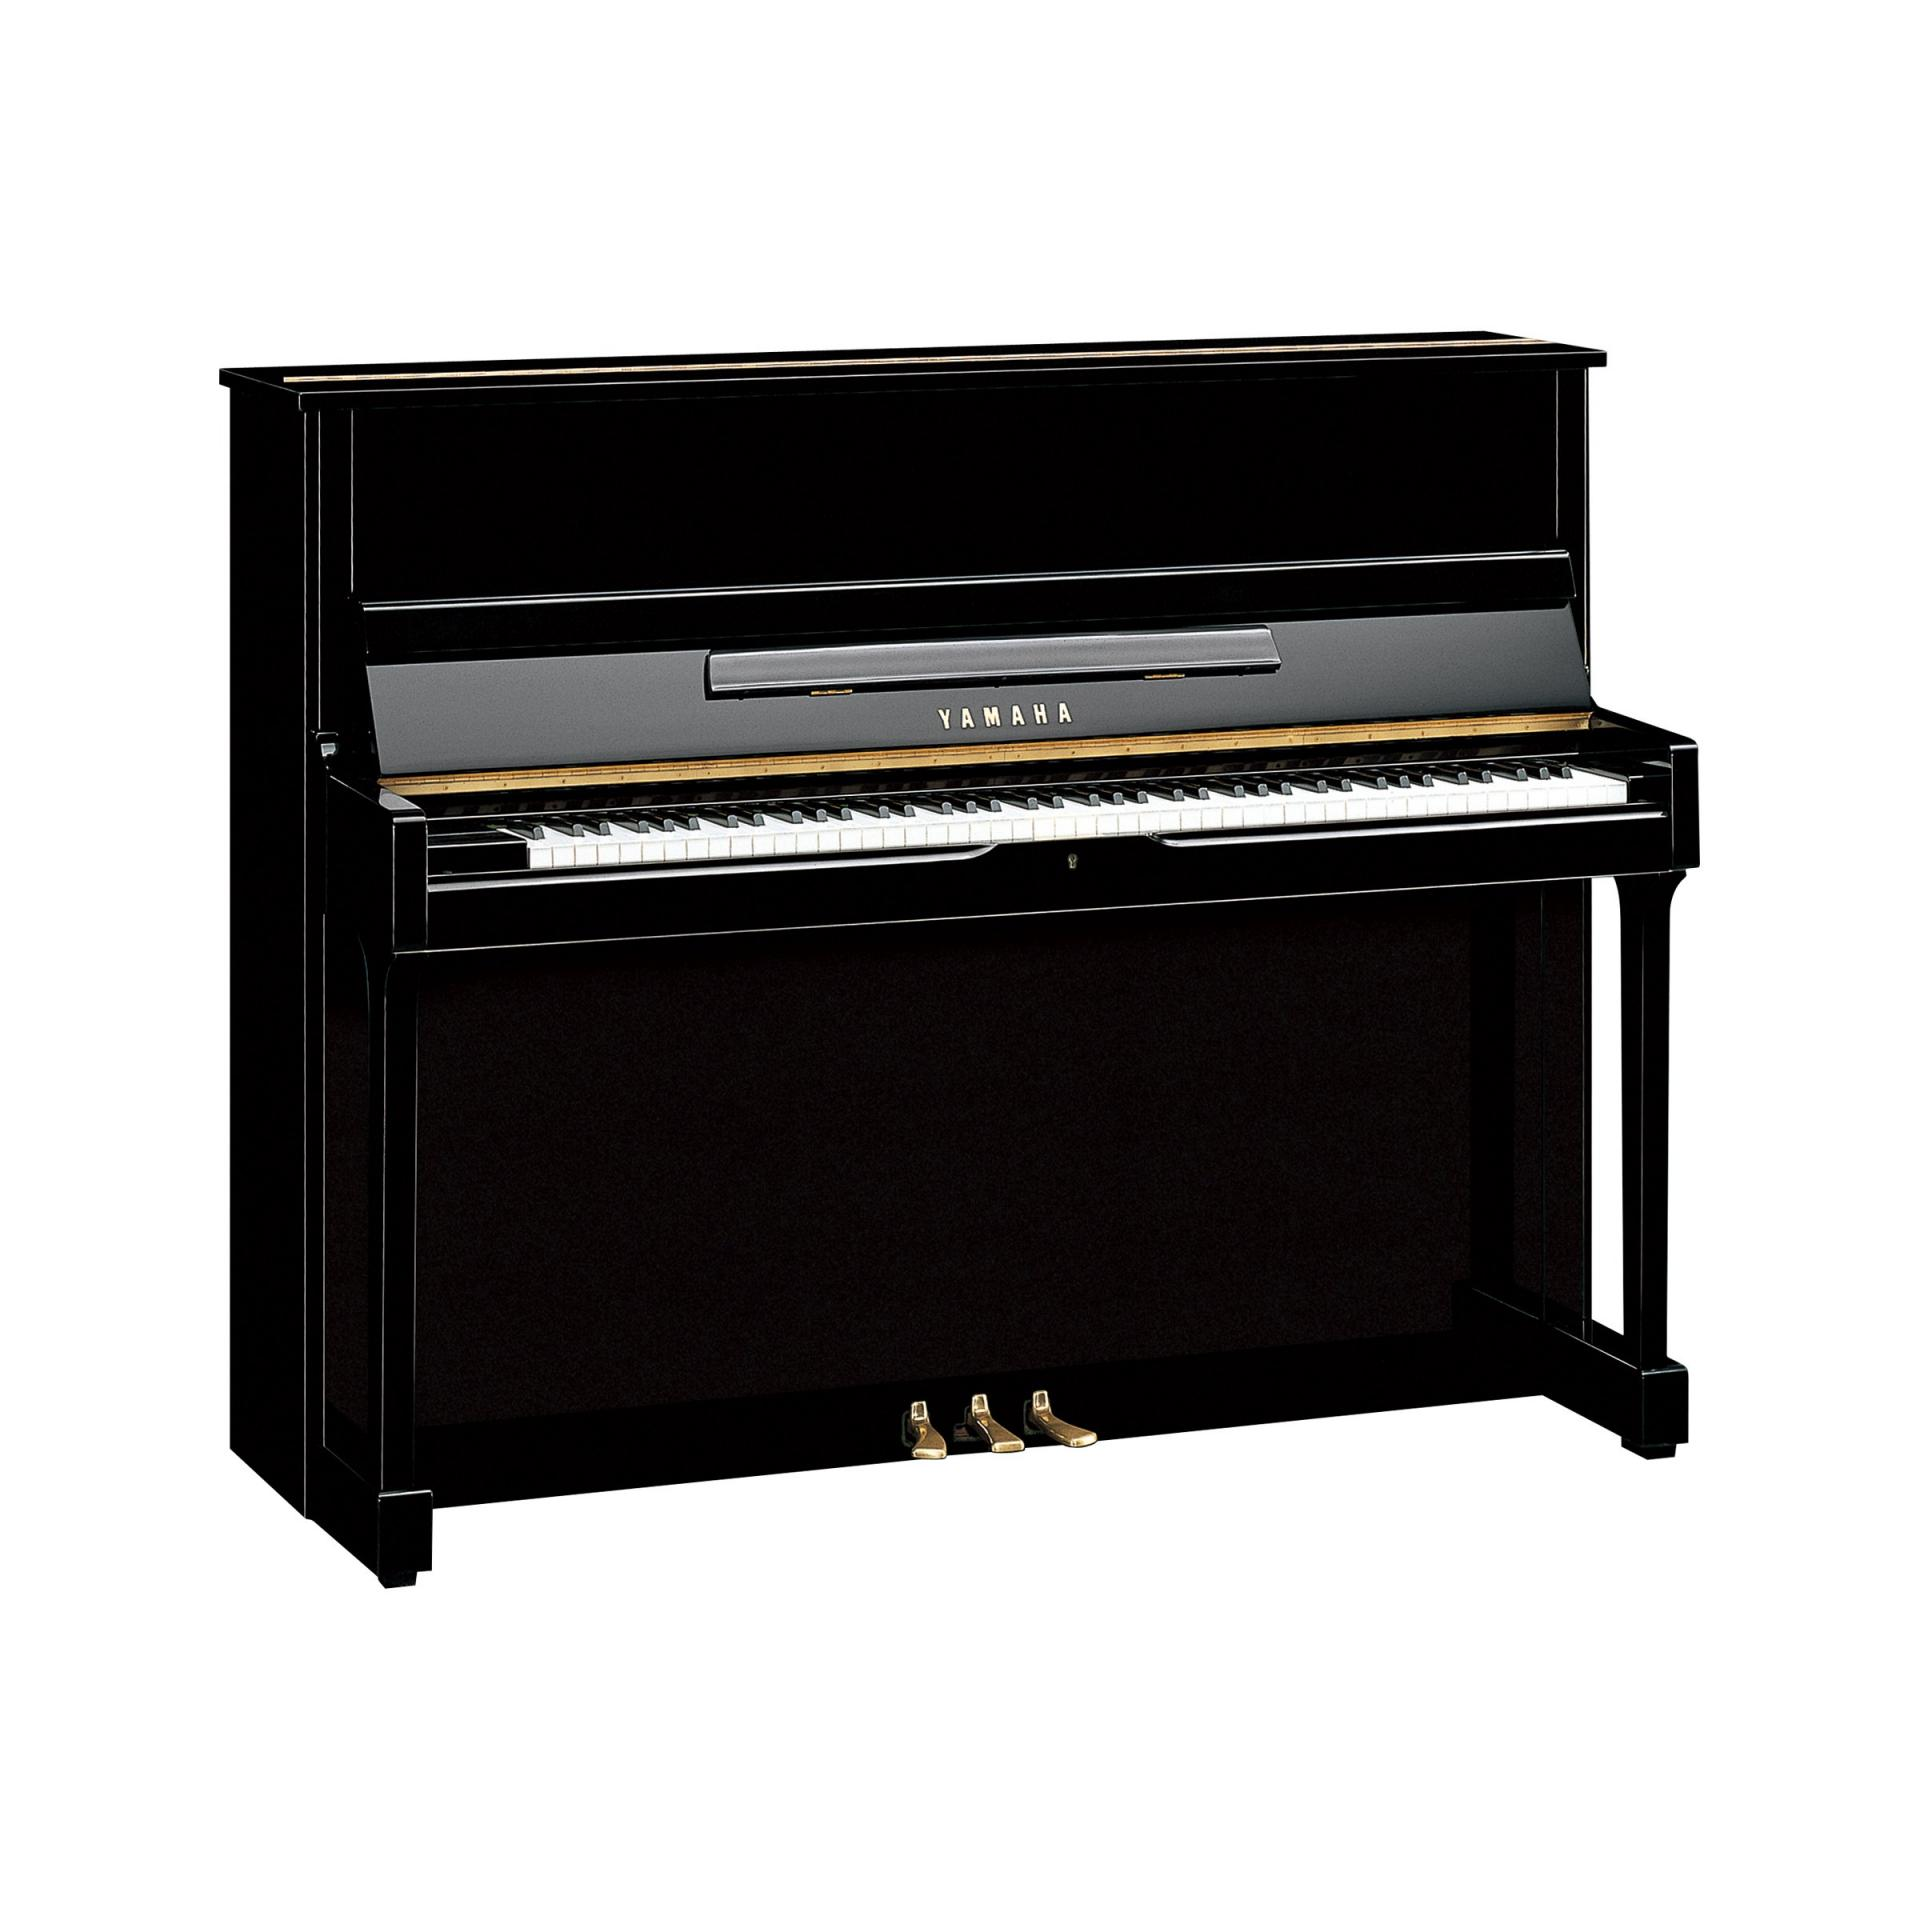 piano droit yamaha mod le su 118 c artisanal noir brillant. Black Bedroom Furniture Sets. Home Design Ideas